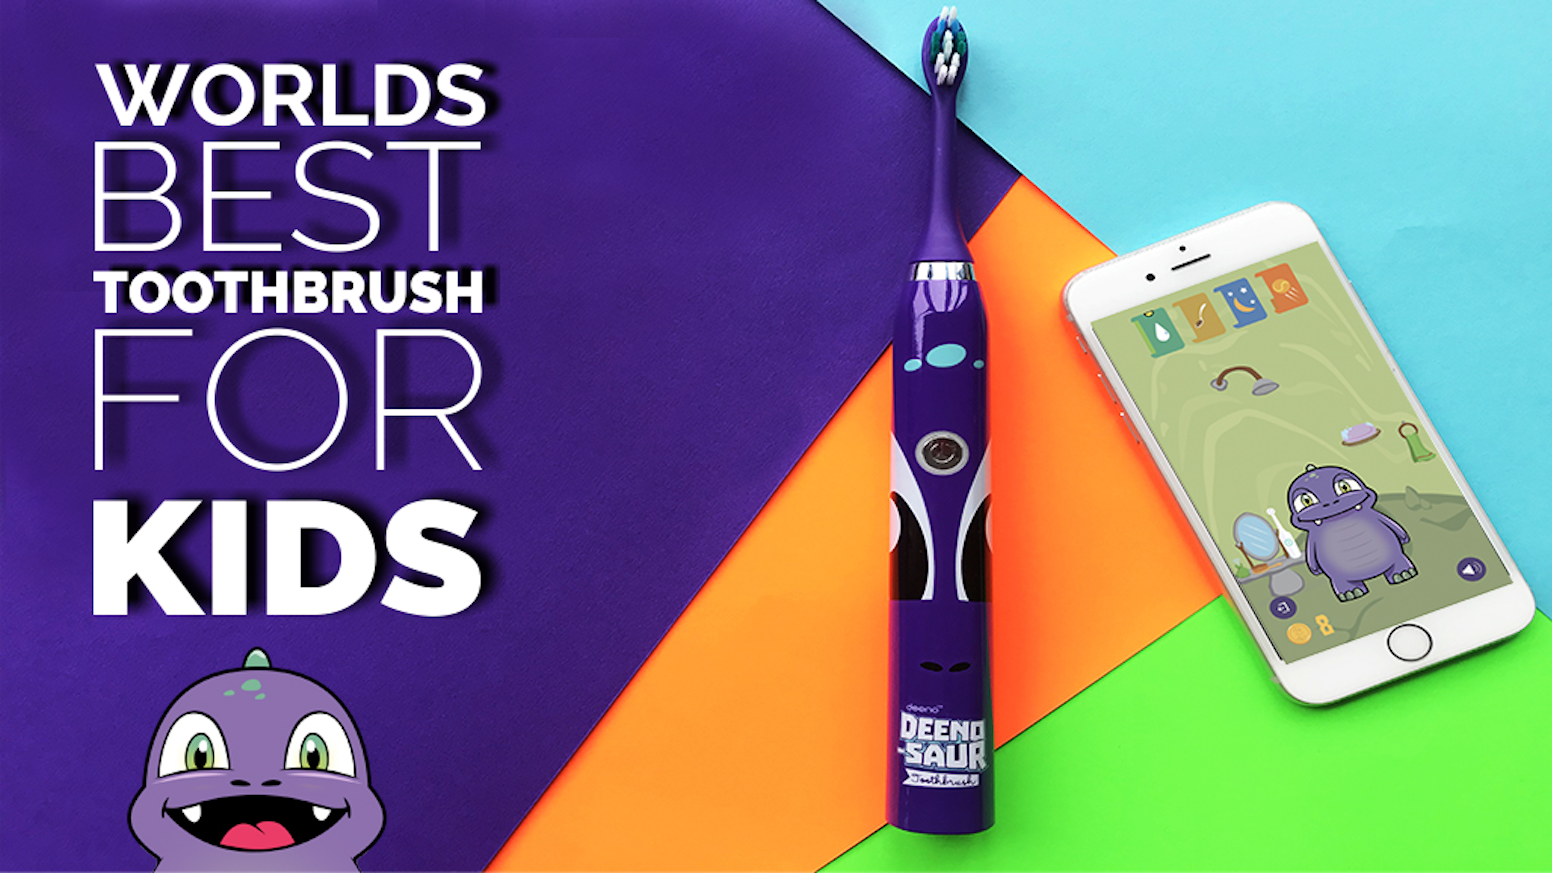 Deeno-saur Smart electric toothbrush and app,  uses gamification to teach kids to brush their teeth properly and improve dental hygiene